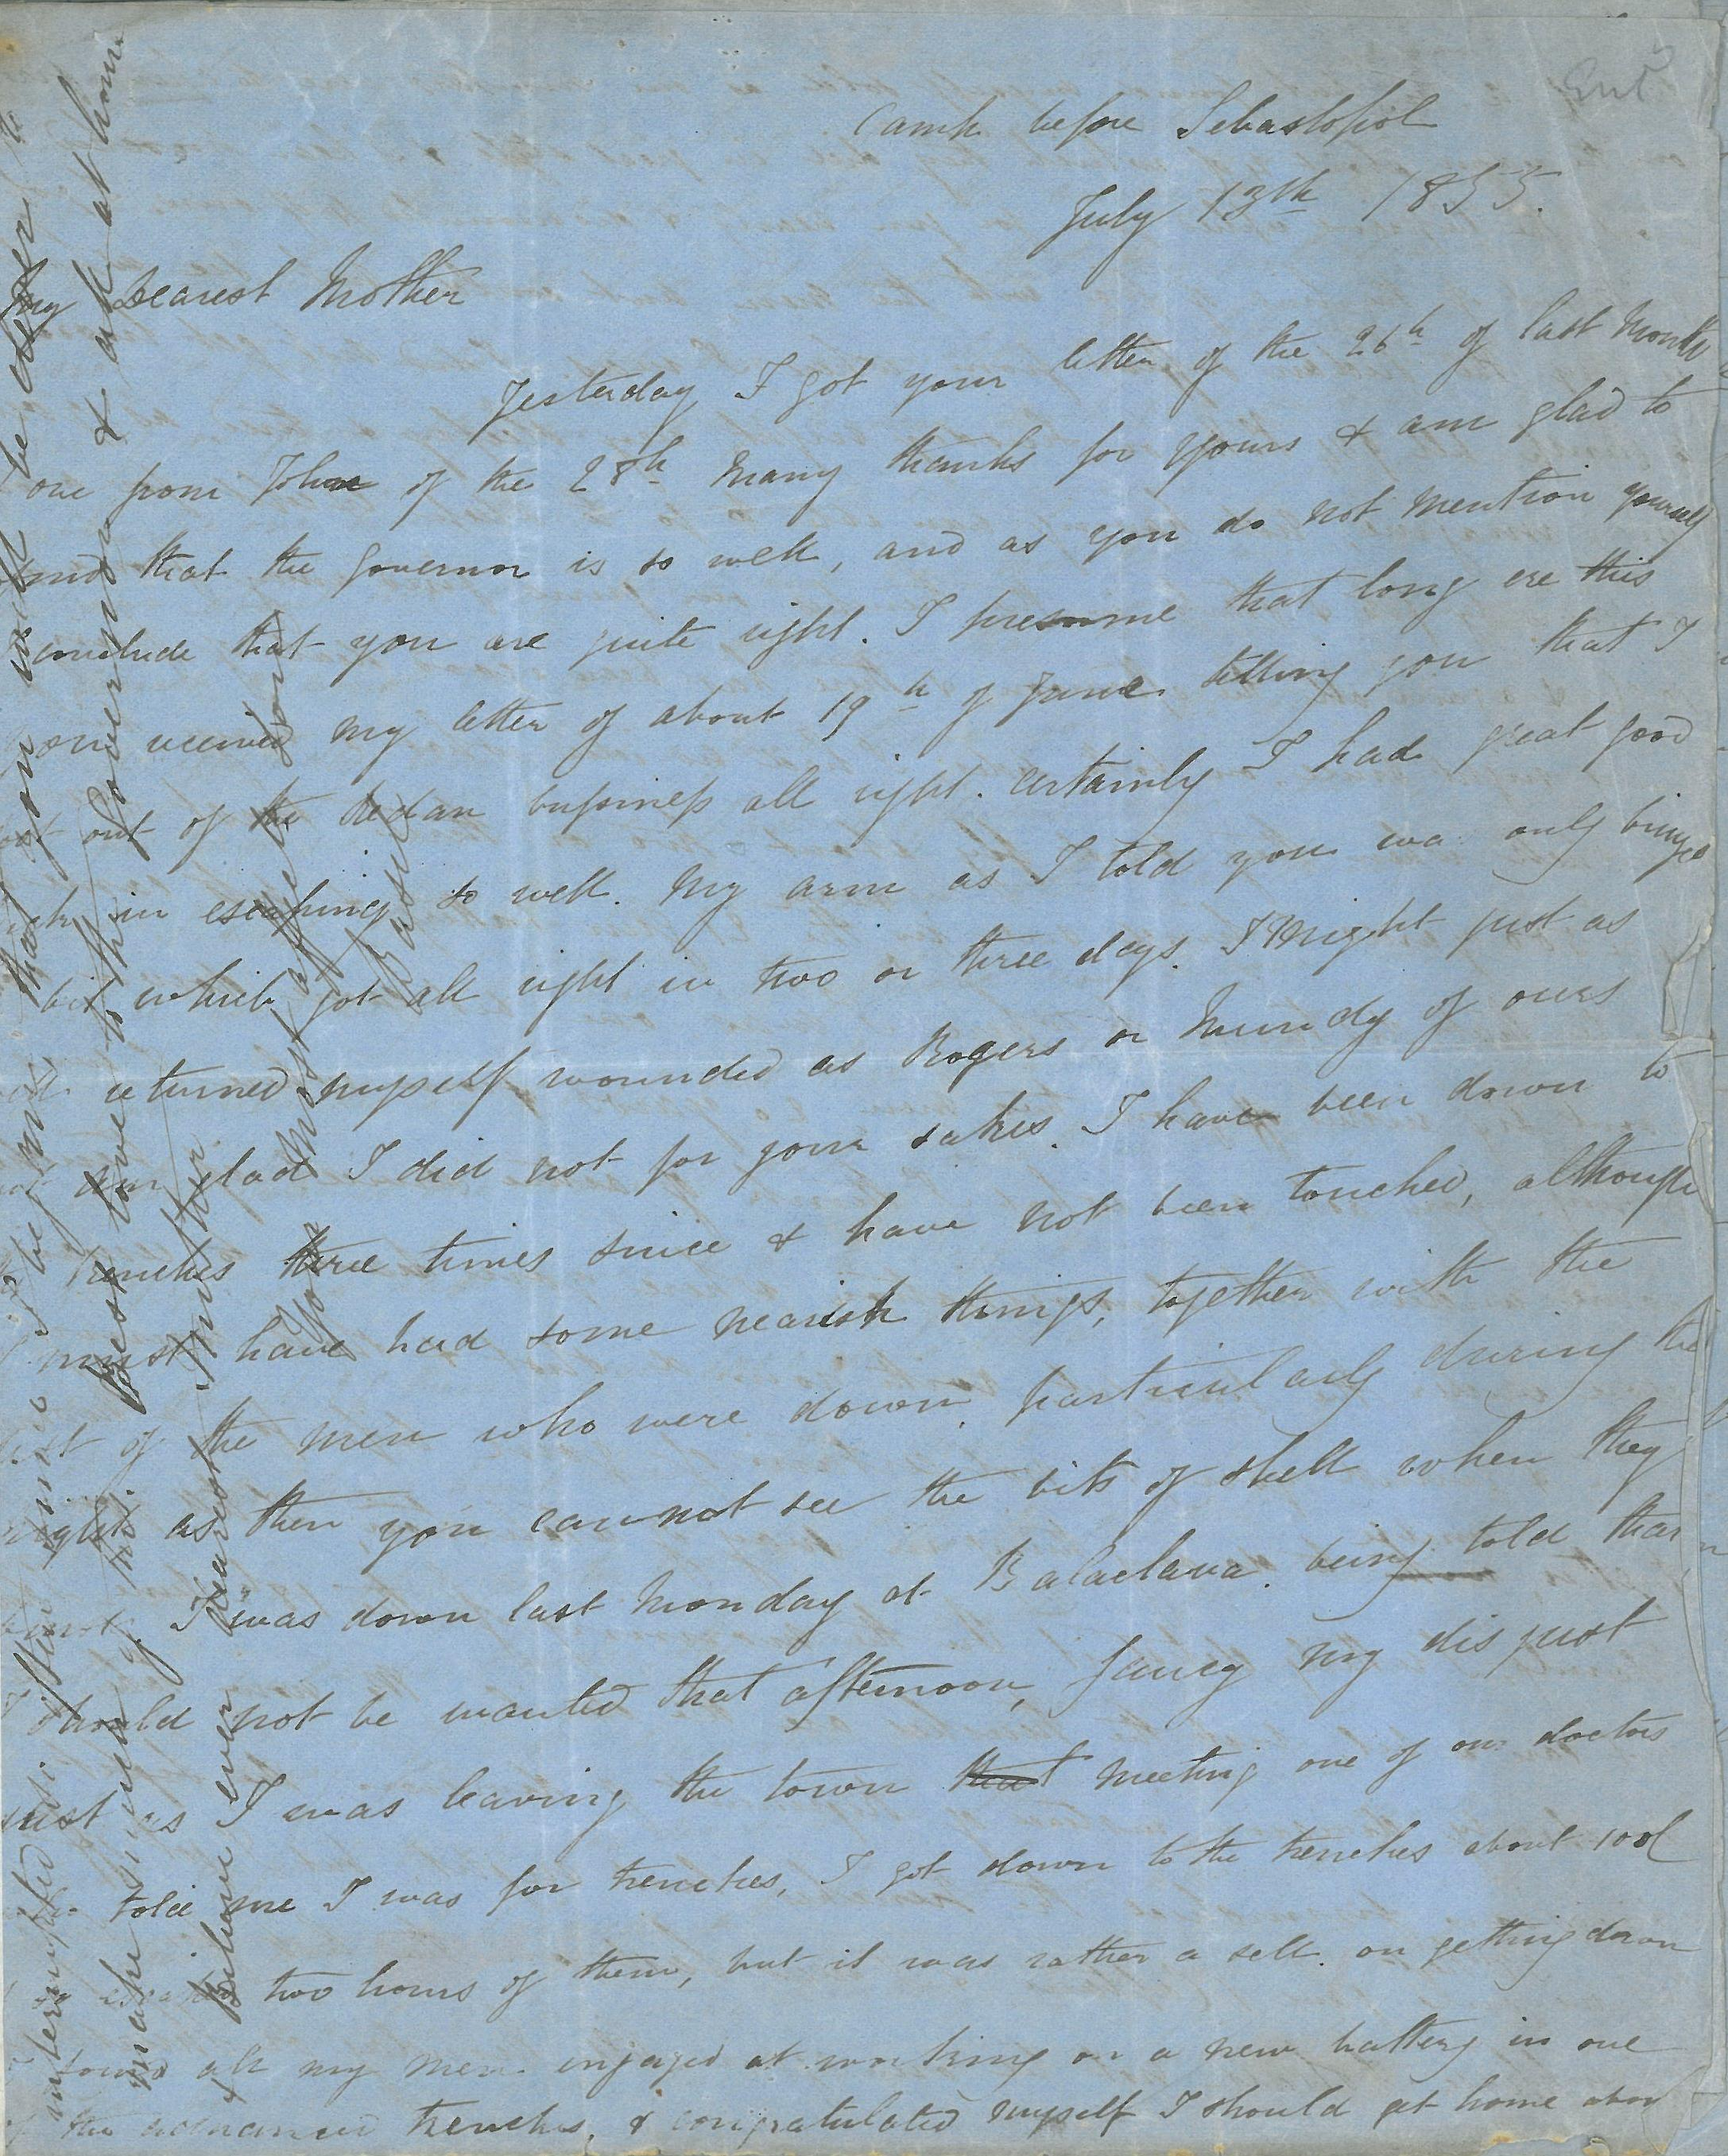 Page one of a letter written by Captain Thomas Basil Fanshawe dated 13 July 1885